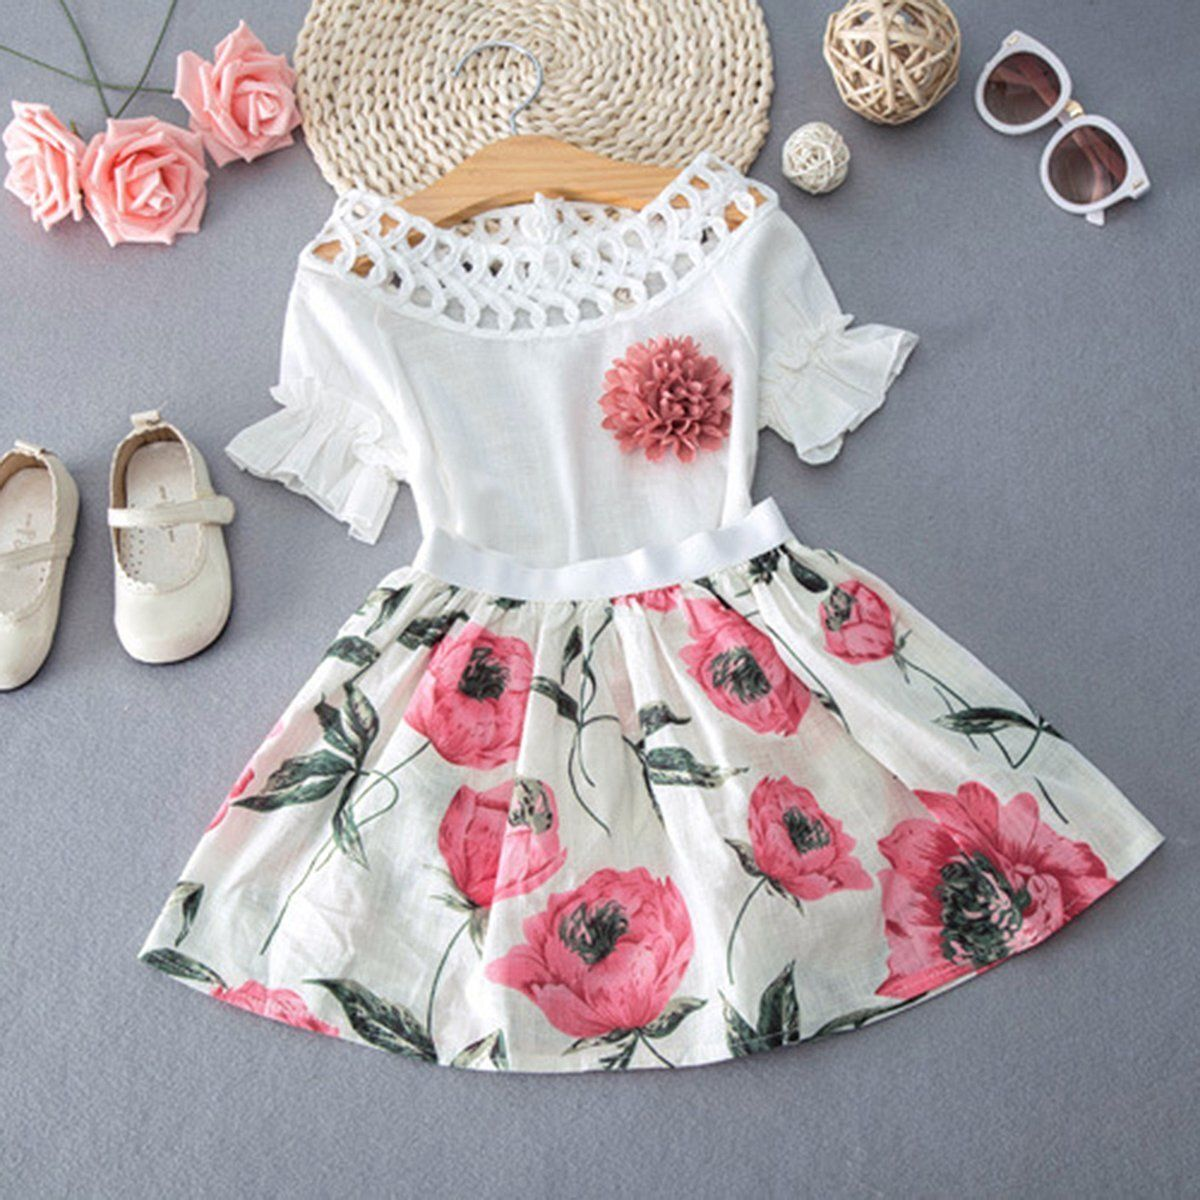 7a55e0780 Details about Kids Toddler Baby Girl Summer Outfit Set Clothes Lace Tops  +Floral Short Dress